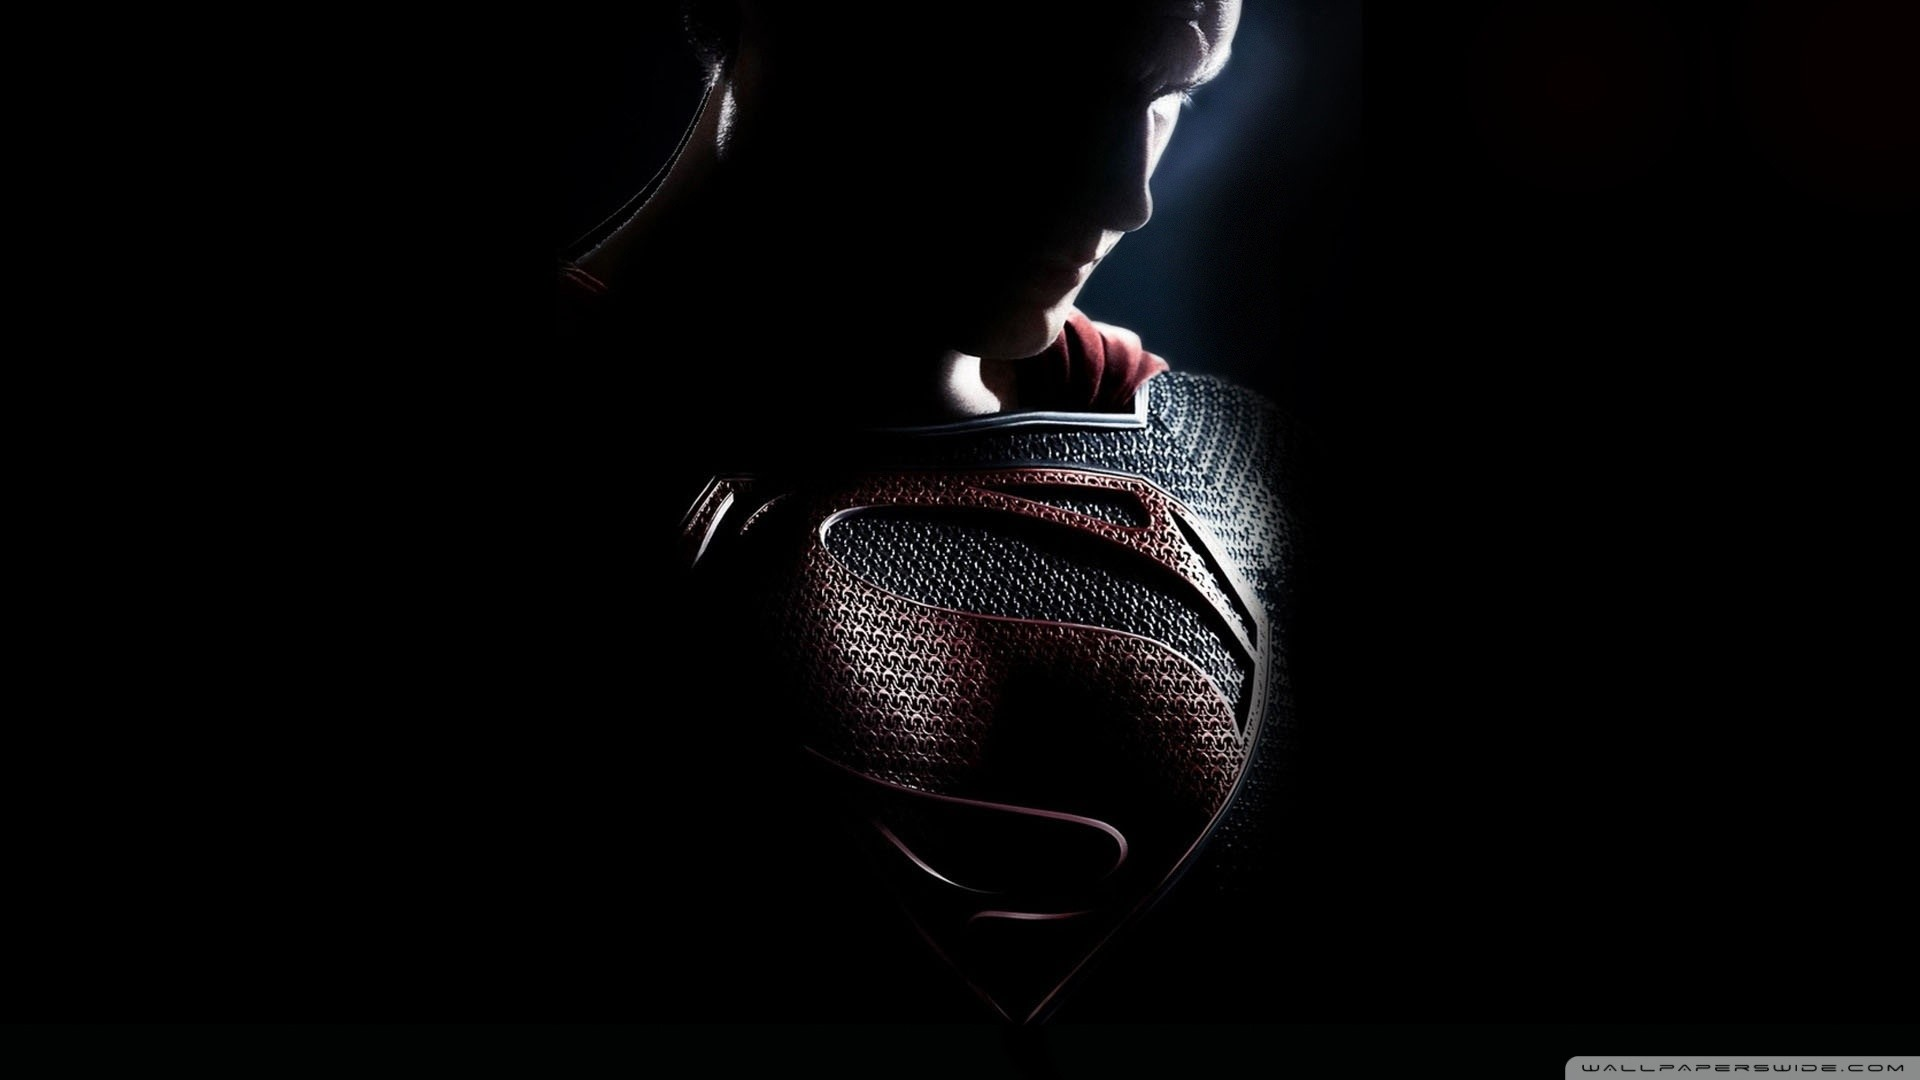 Superman Wallpaper (70+ images)